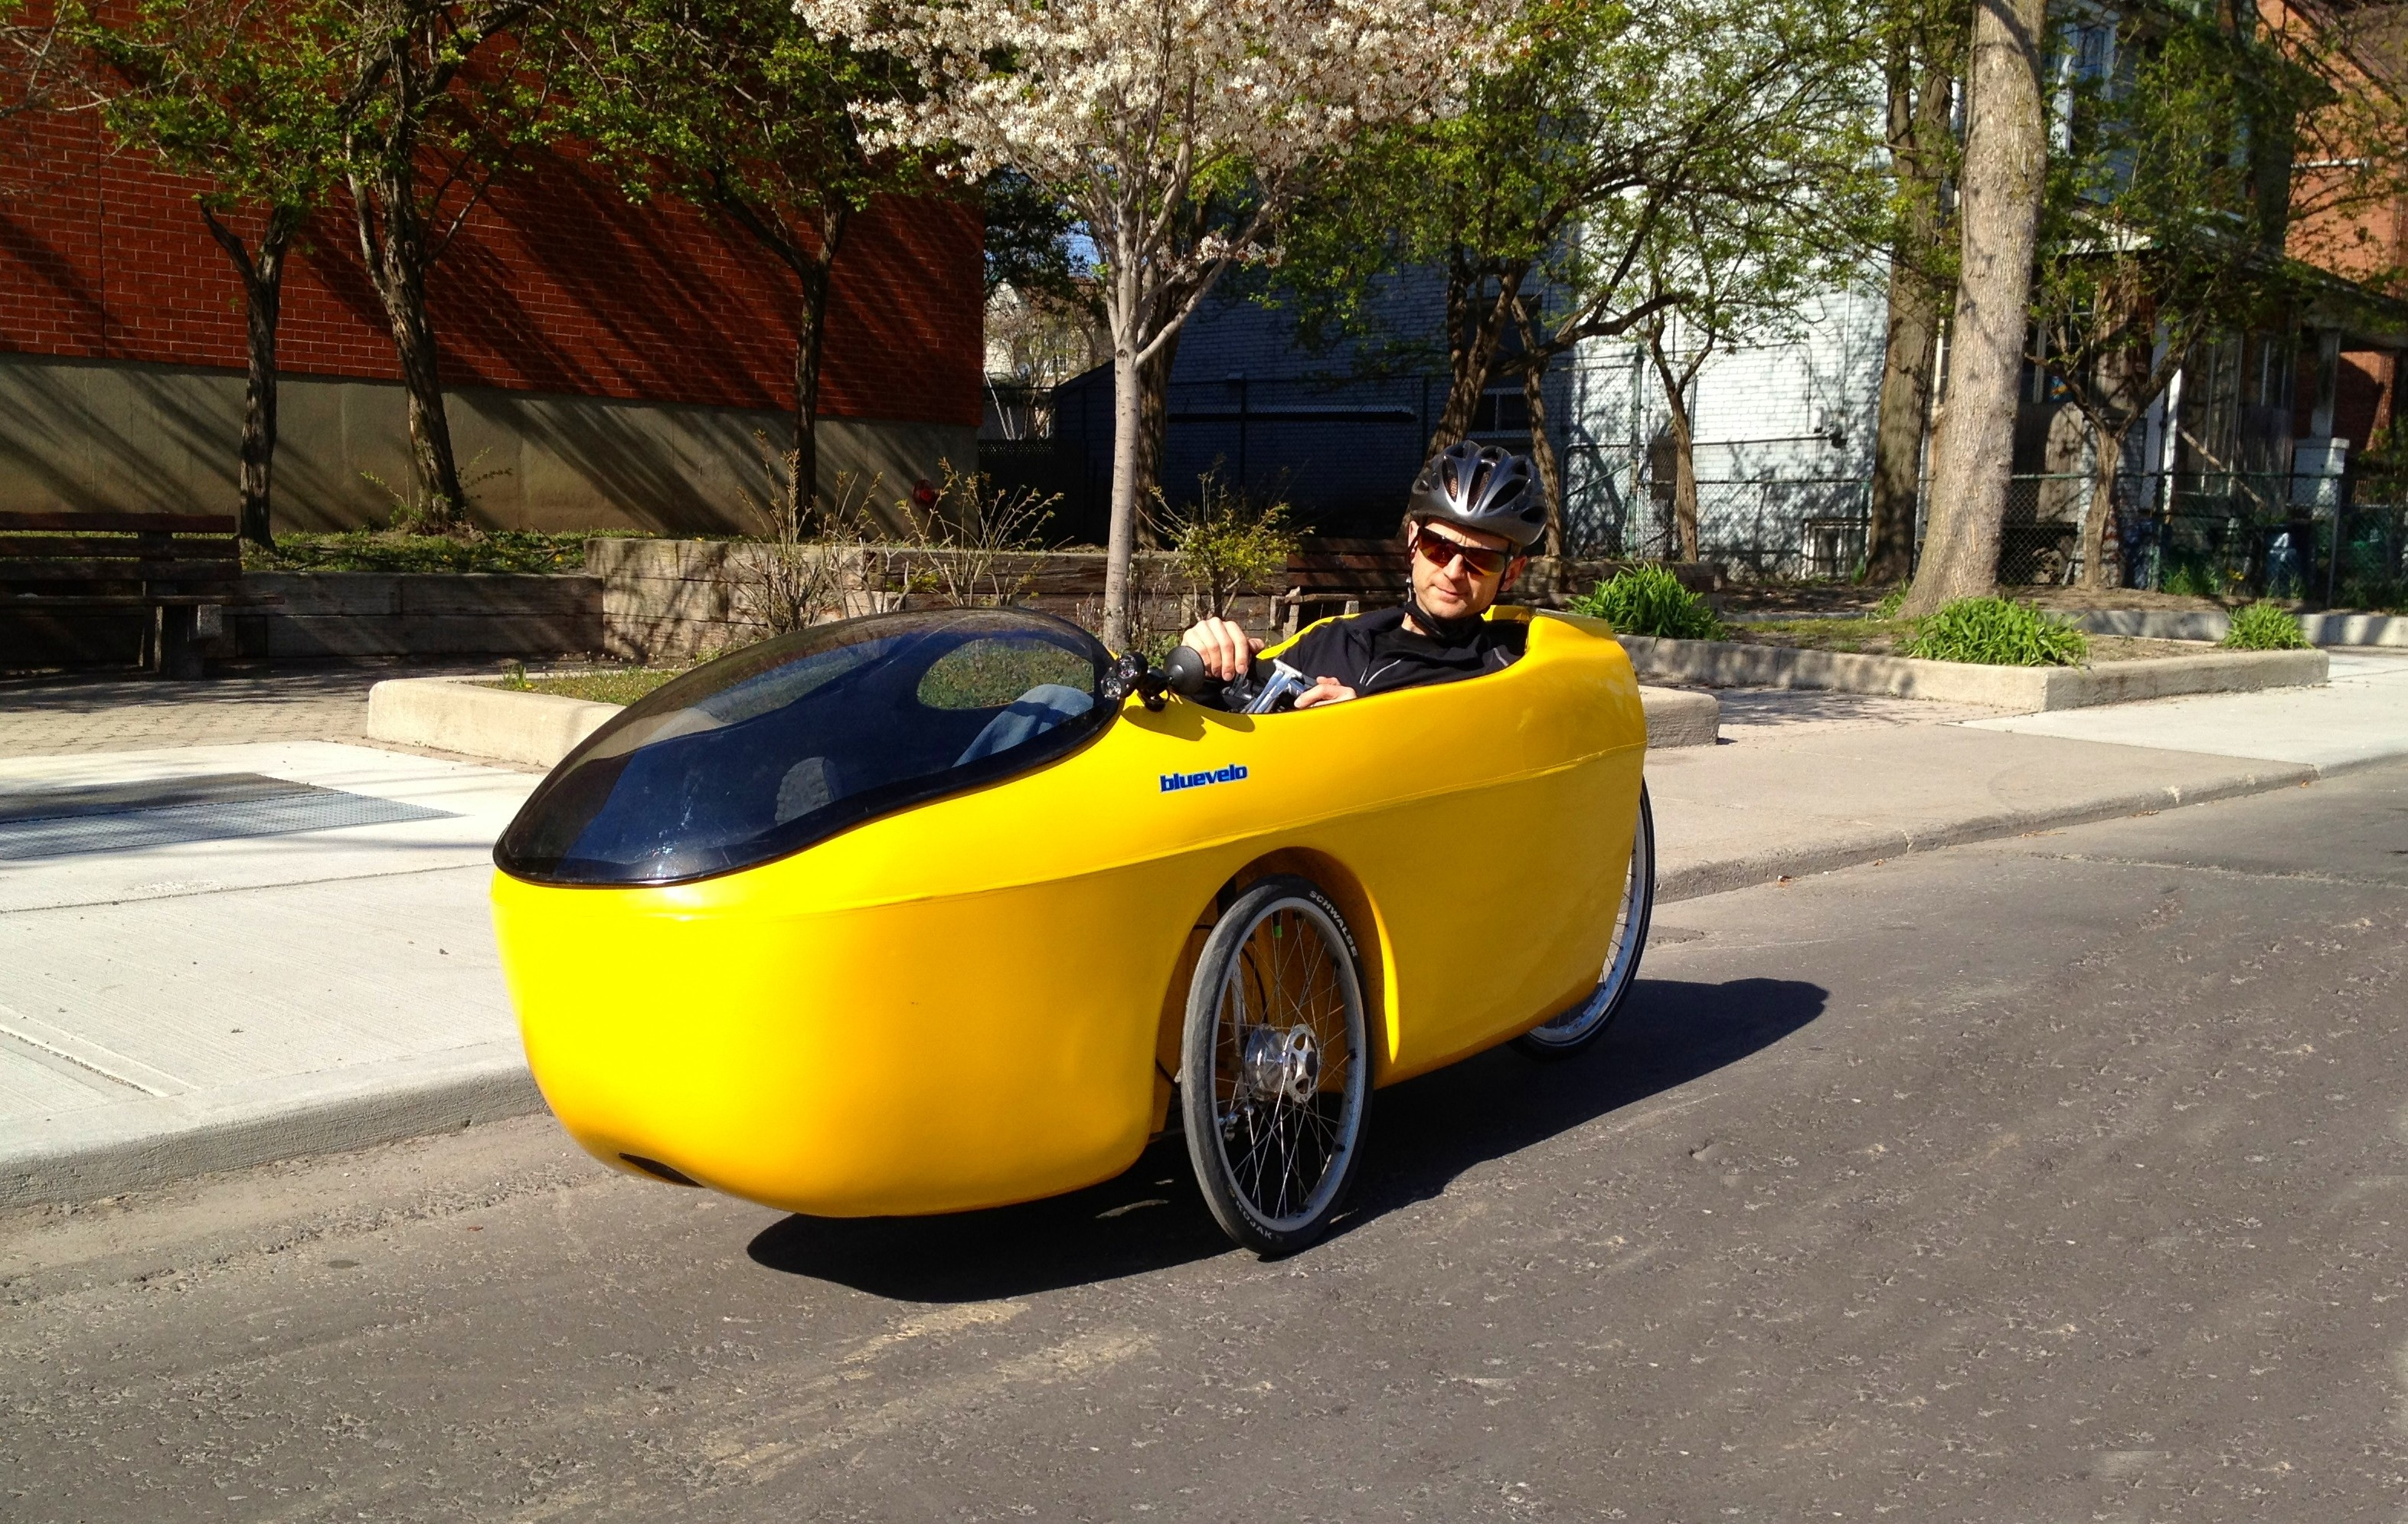 Hornet velomobile comes with power boost included